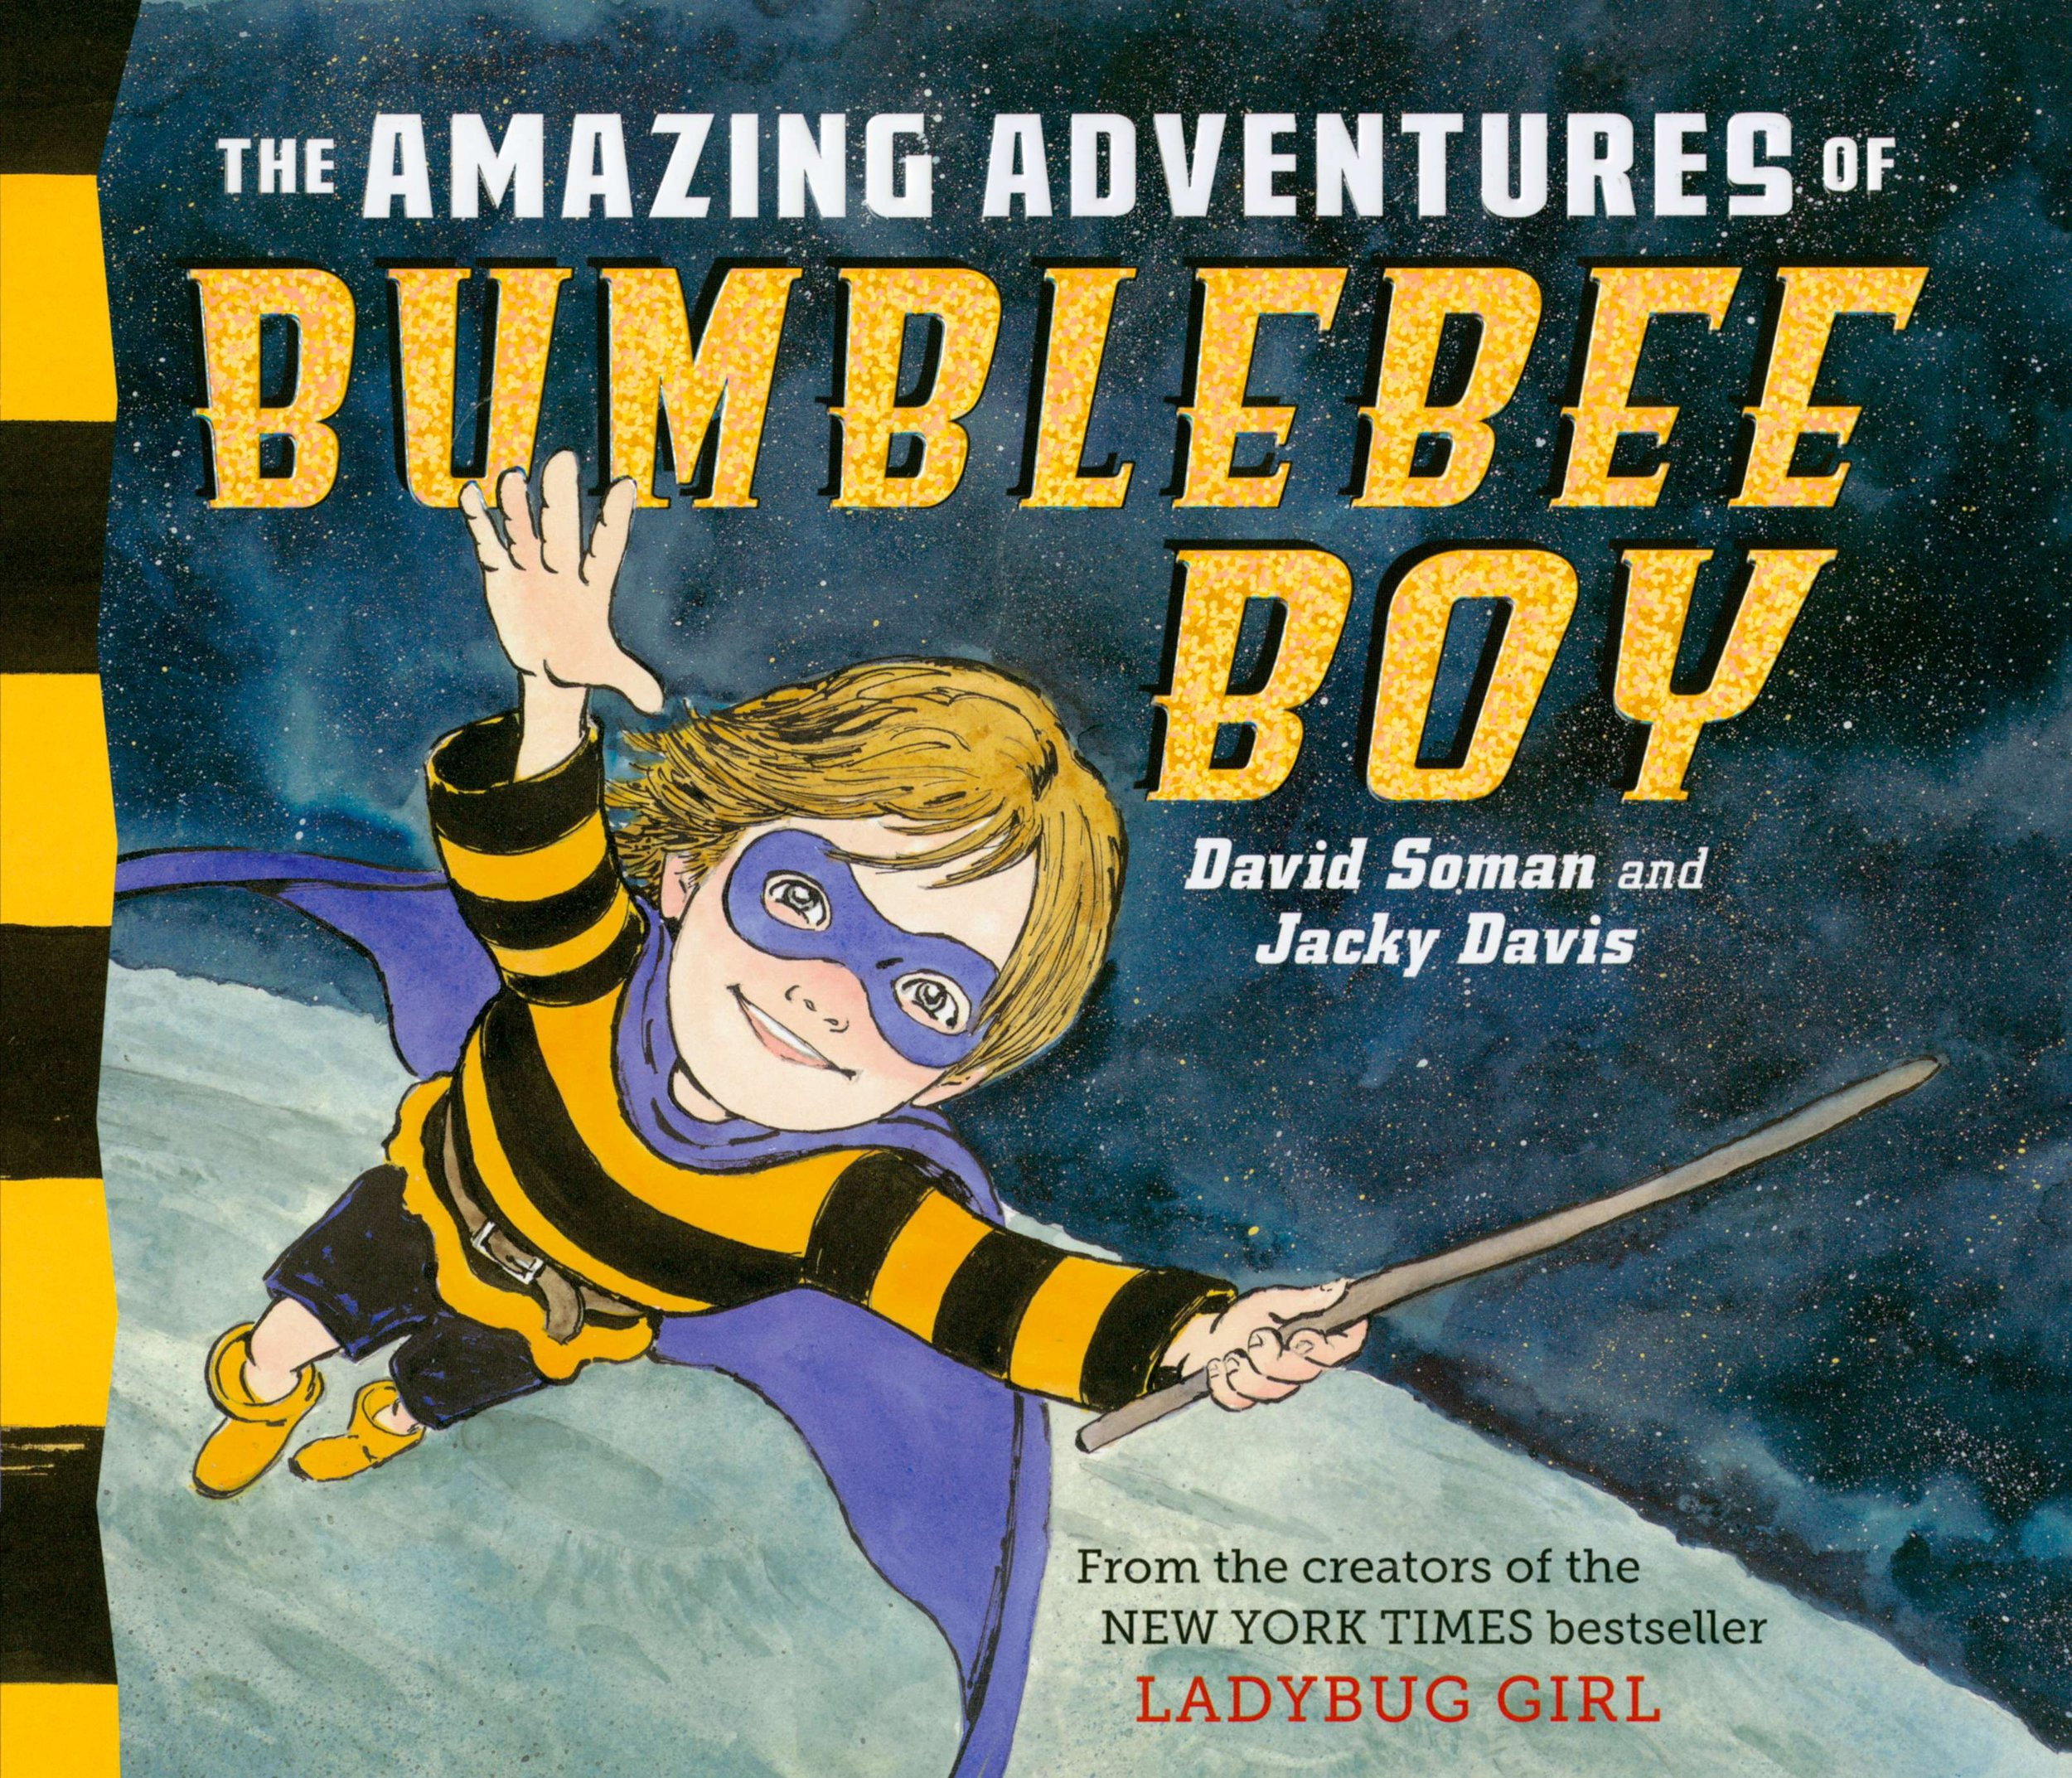 The Amazing Adventures of Bumblebee Boy - Through their imaginary adventures, Sam and Owen discover just how much fun a brother can be, and learn that there are times to play alone and times to play with others.READ MORE